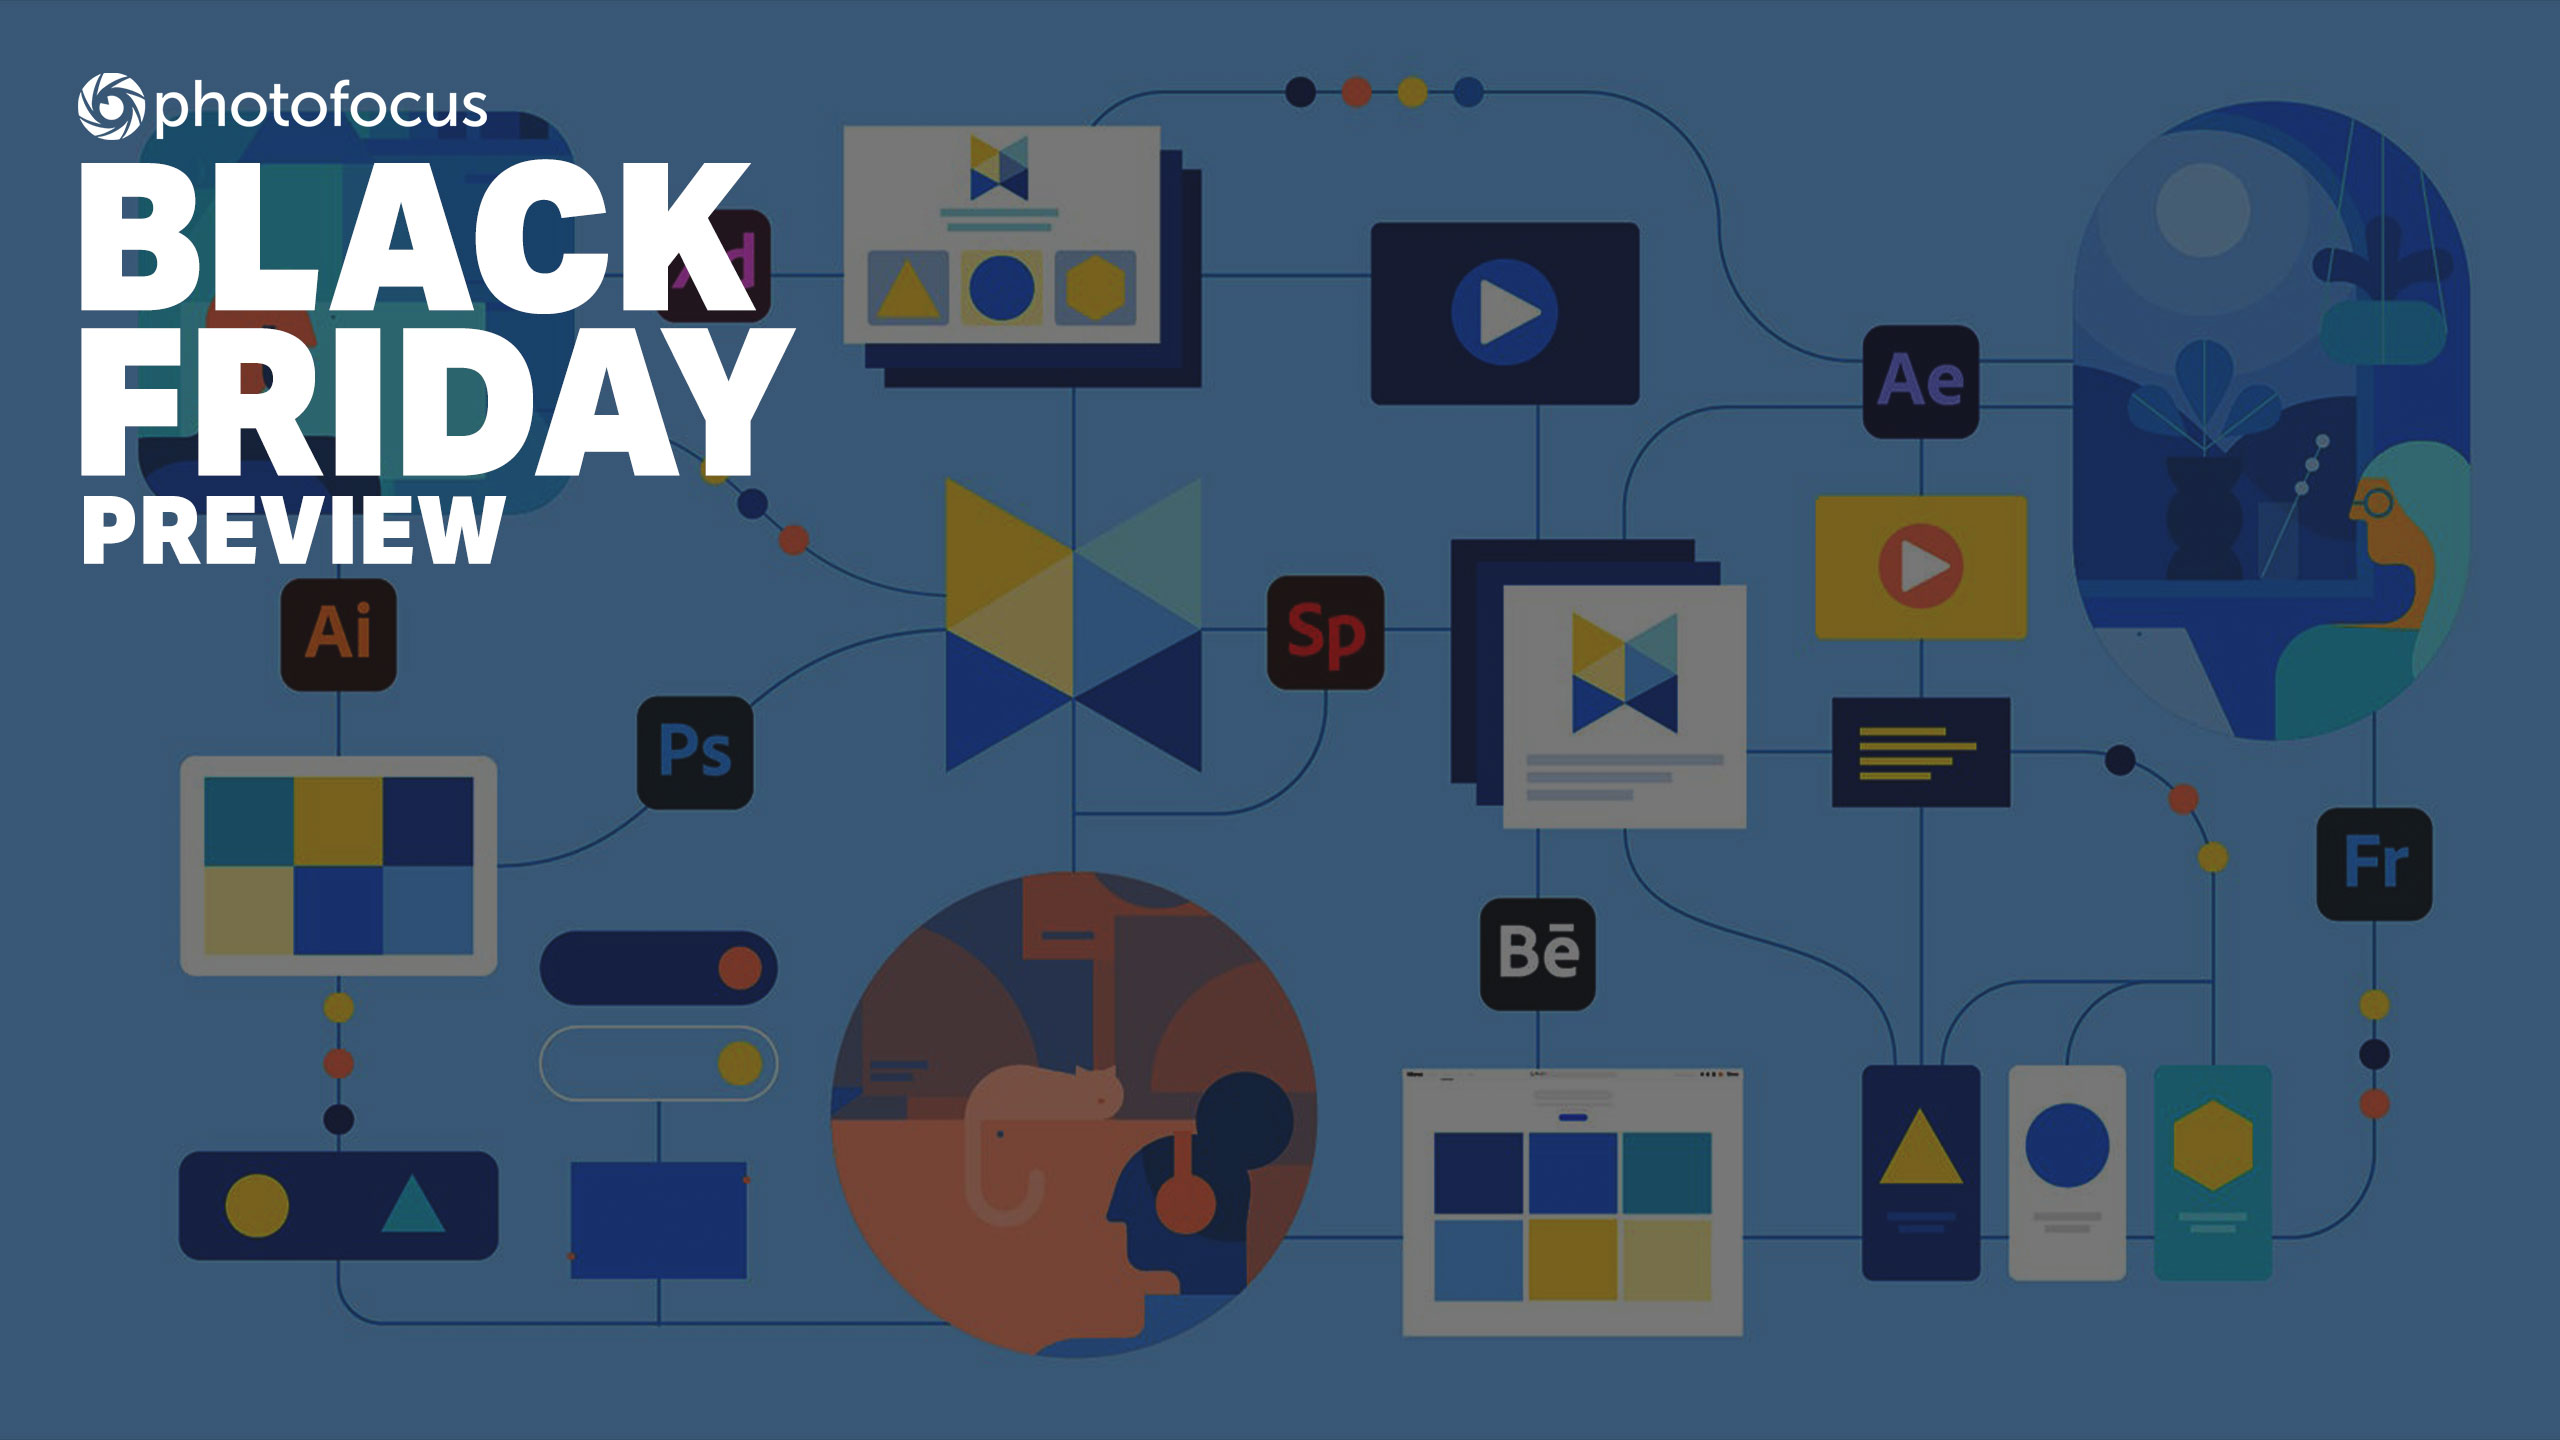 Save up to 25% off Adobe Creative Cloud with early Black Friday savings